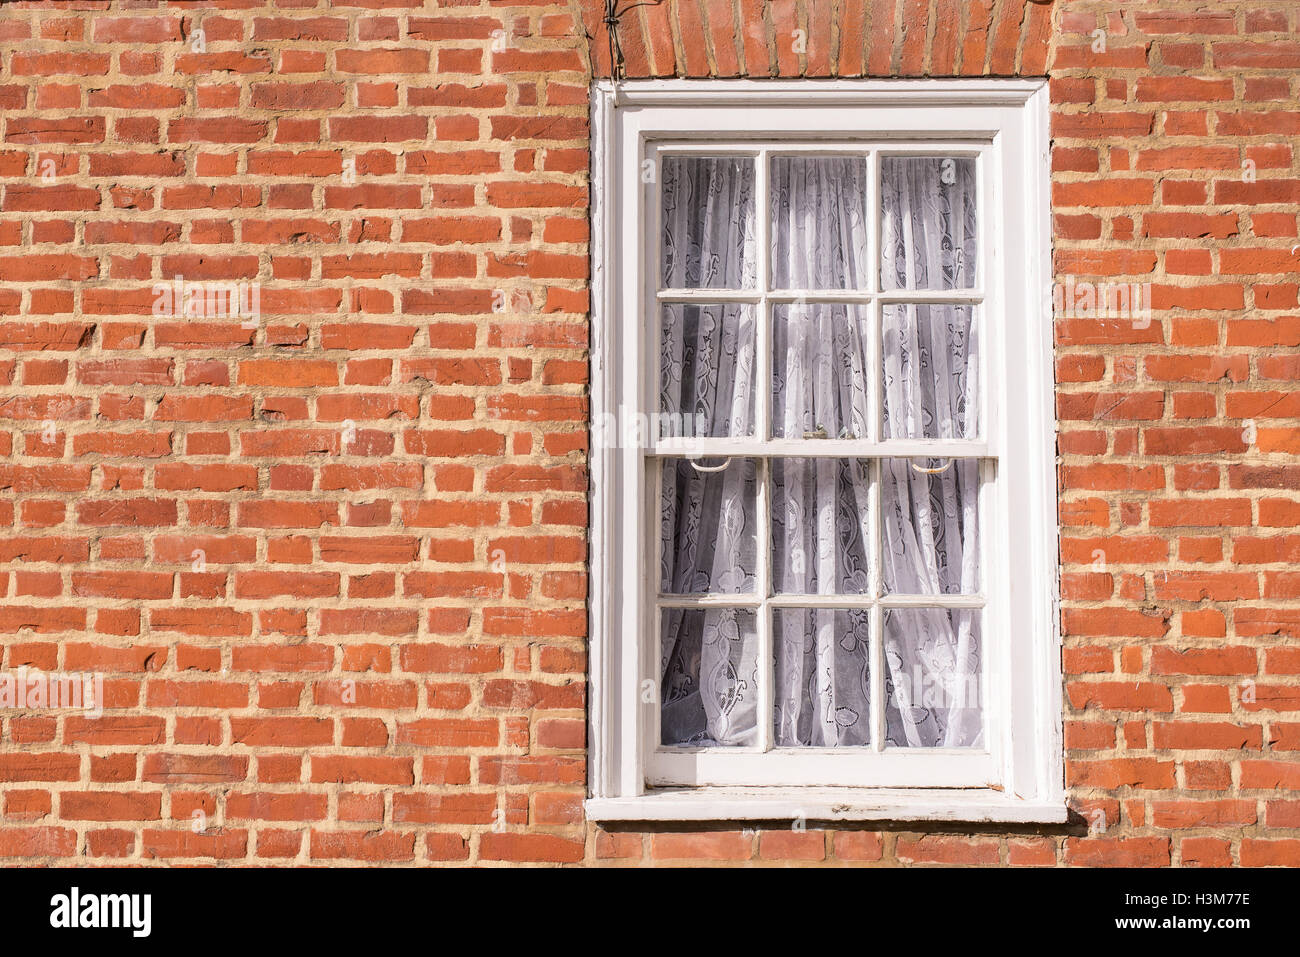 Victorian wooden frame white sash window with glass panels on a classic red brick wall